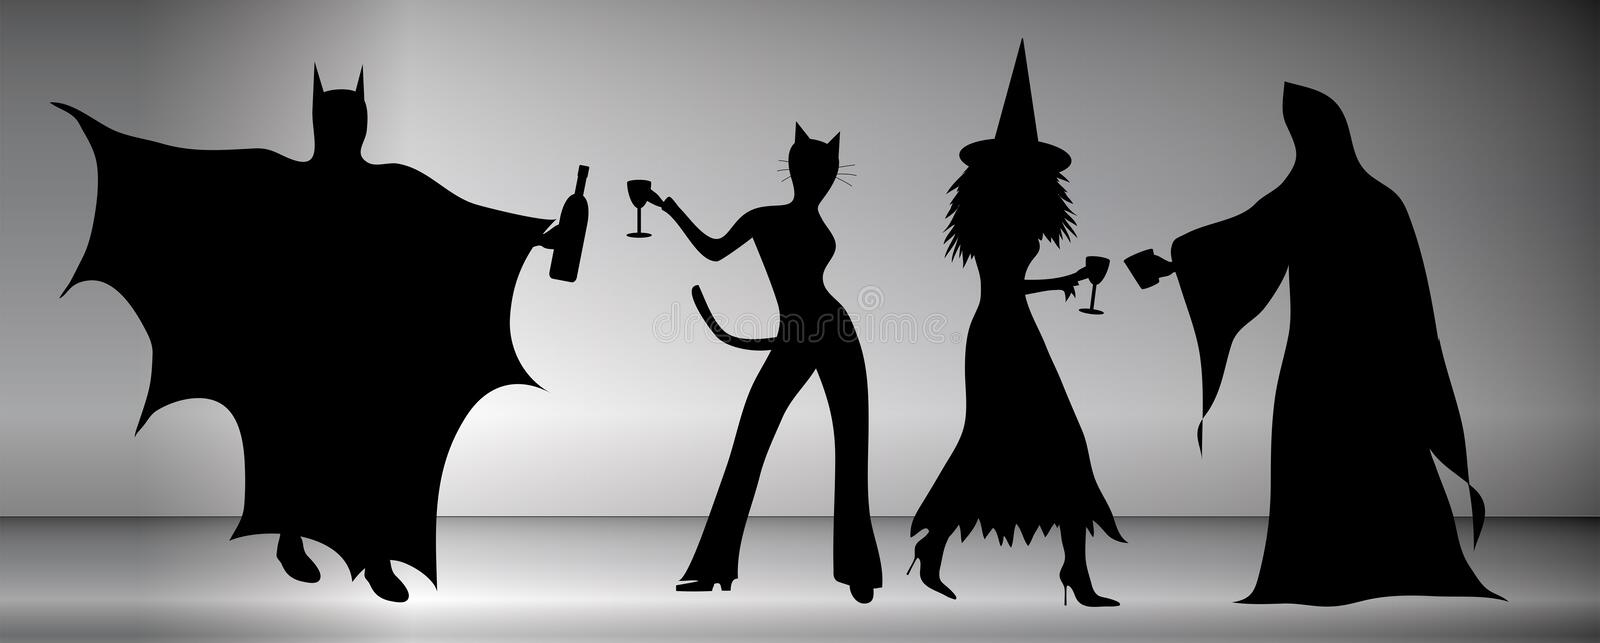 Halloween Party stock illustration